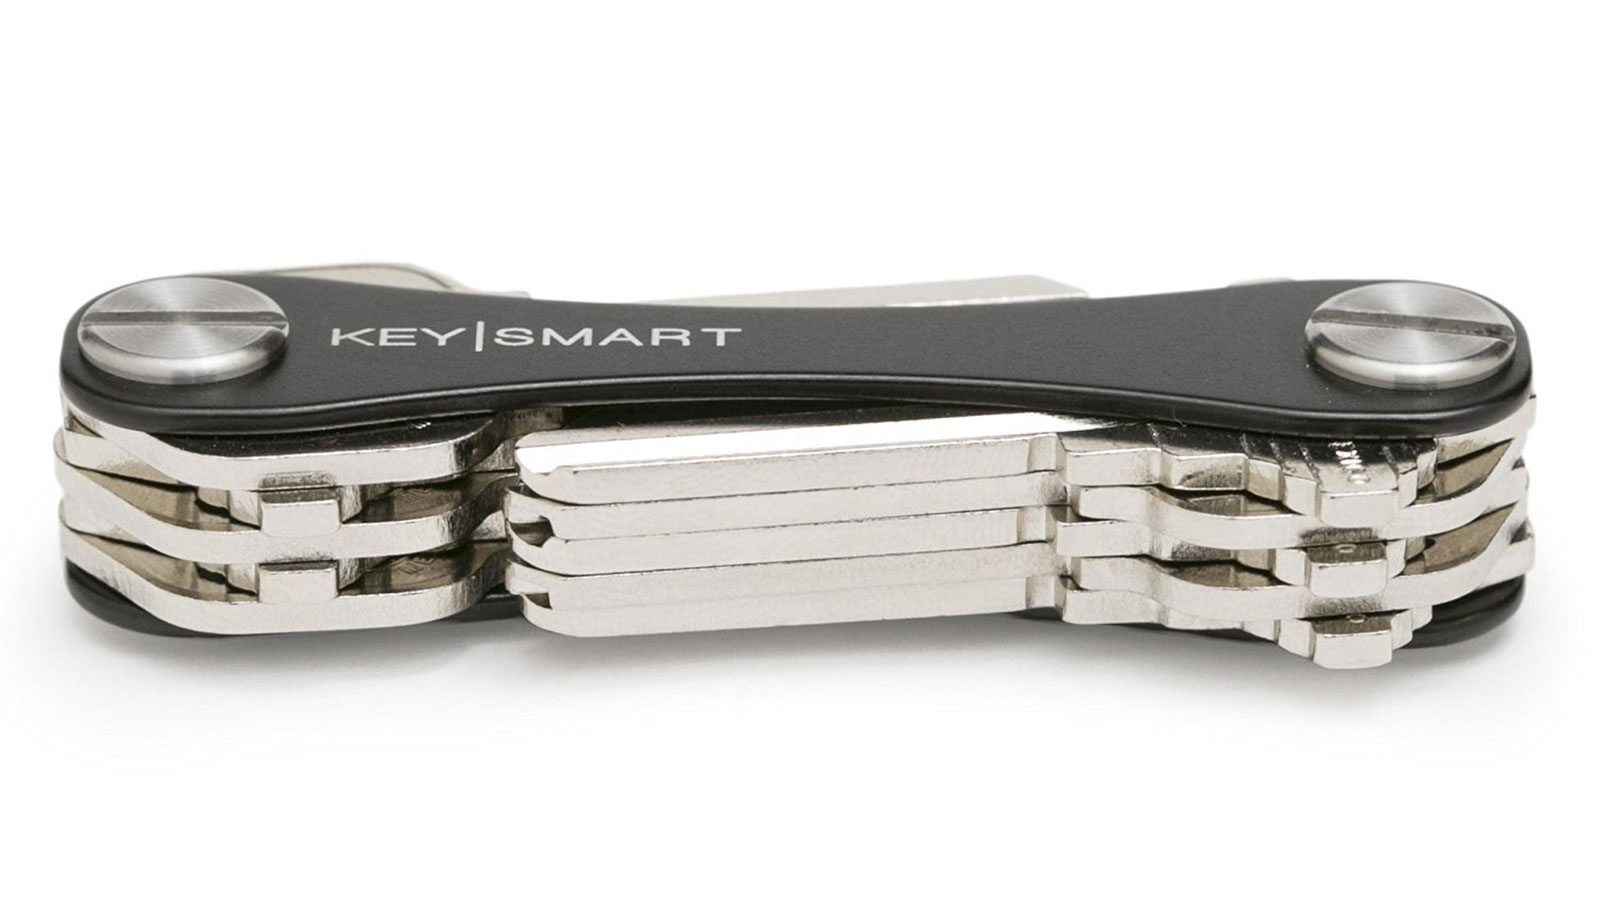 KeySmart Compact EDC Key Organizer | best everyday carry key organizers